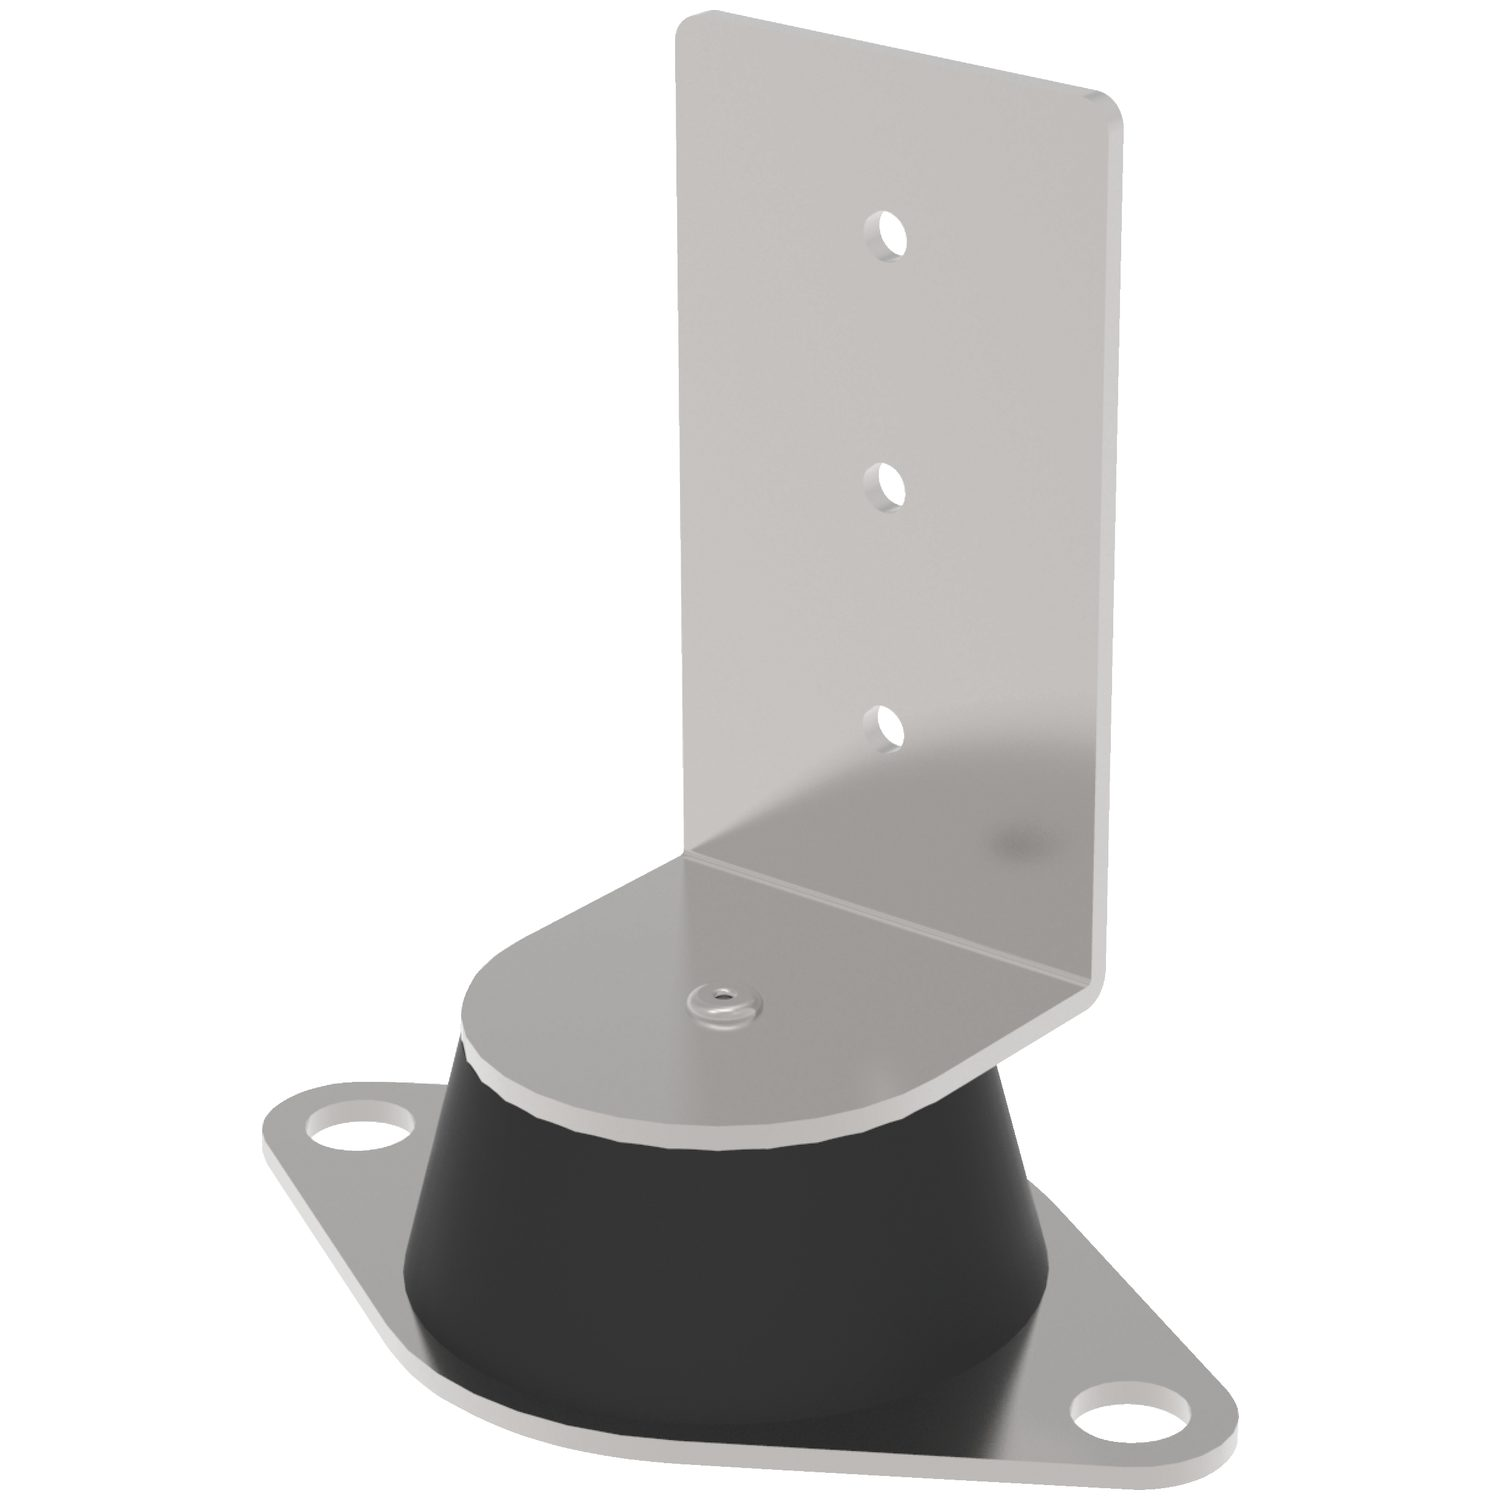 P2556 - Acoustic Wall Damper right angle fixing